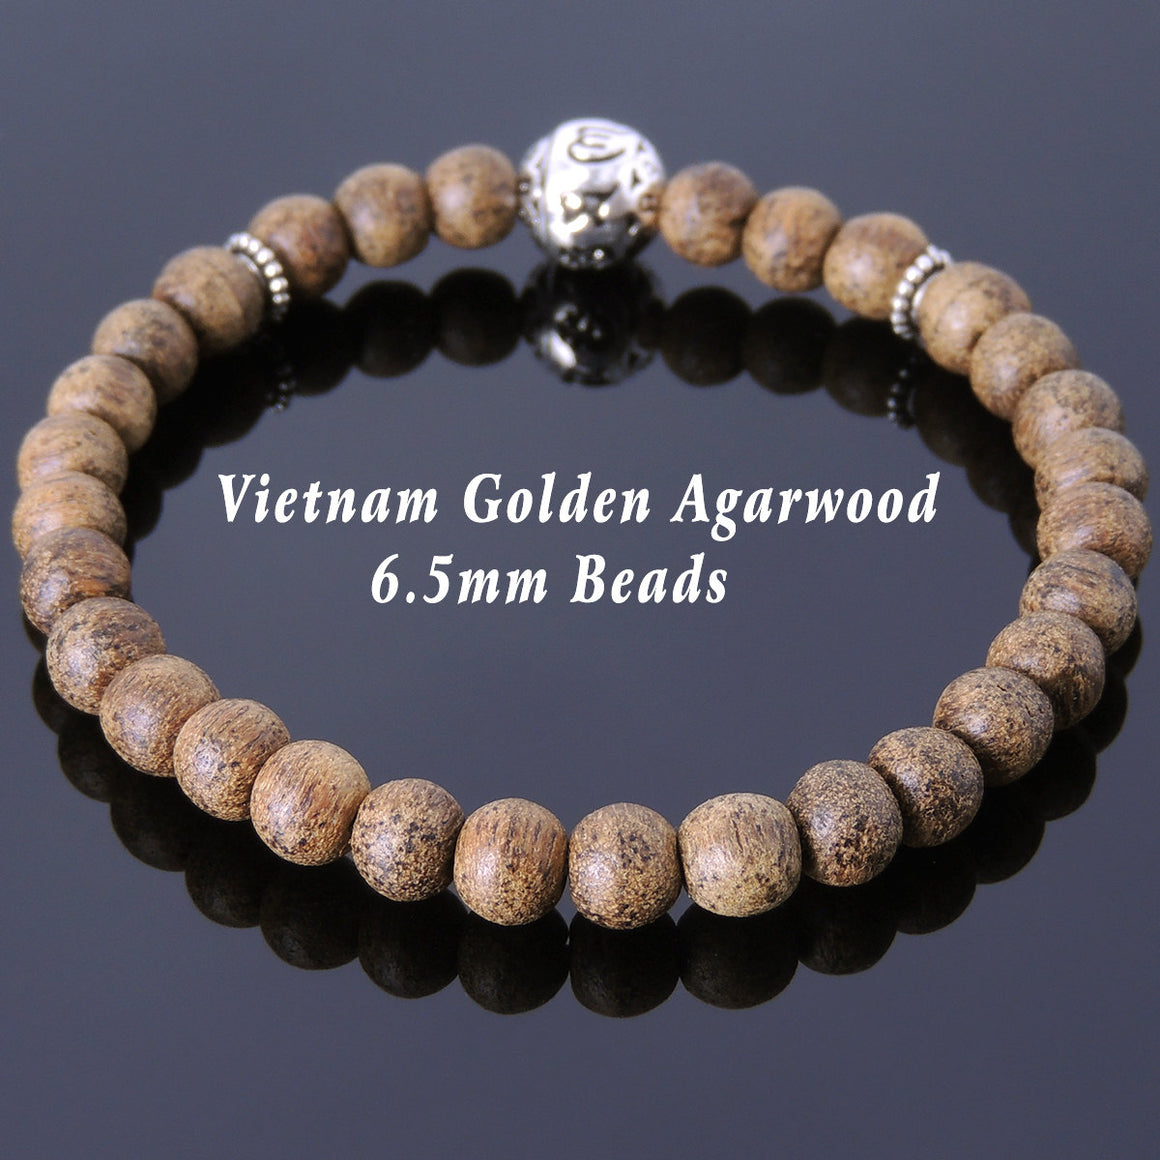 6.5mm Golden Agarwood Meditation Bracelet with S925 Sterling Silver Spacers & OM Mantra Bead - Handmade by Gem & Silver BR684